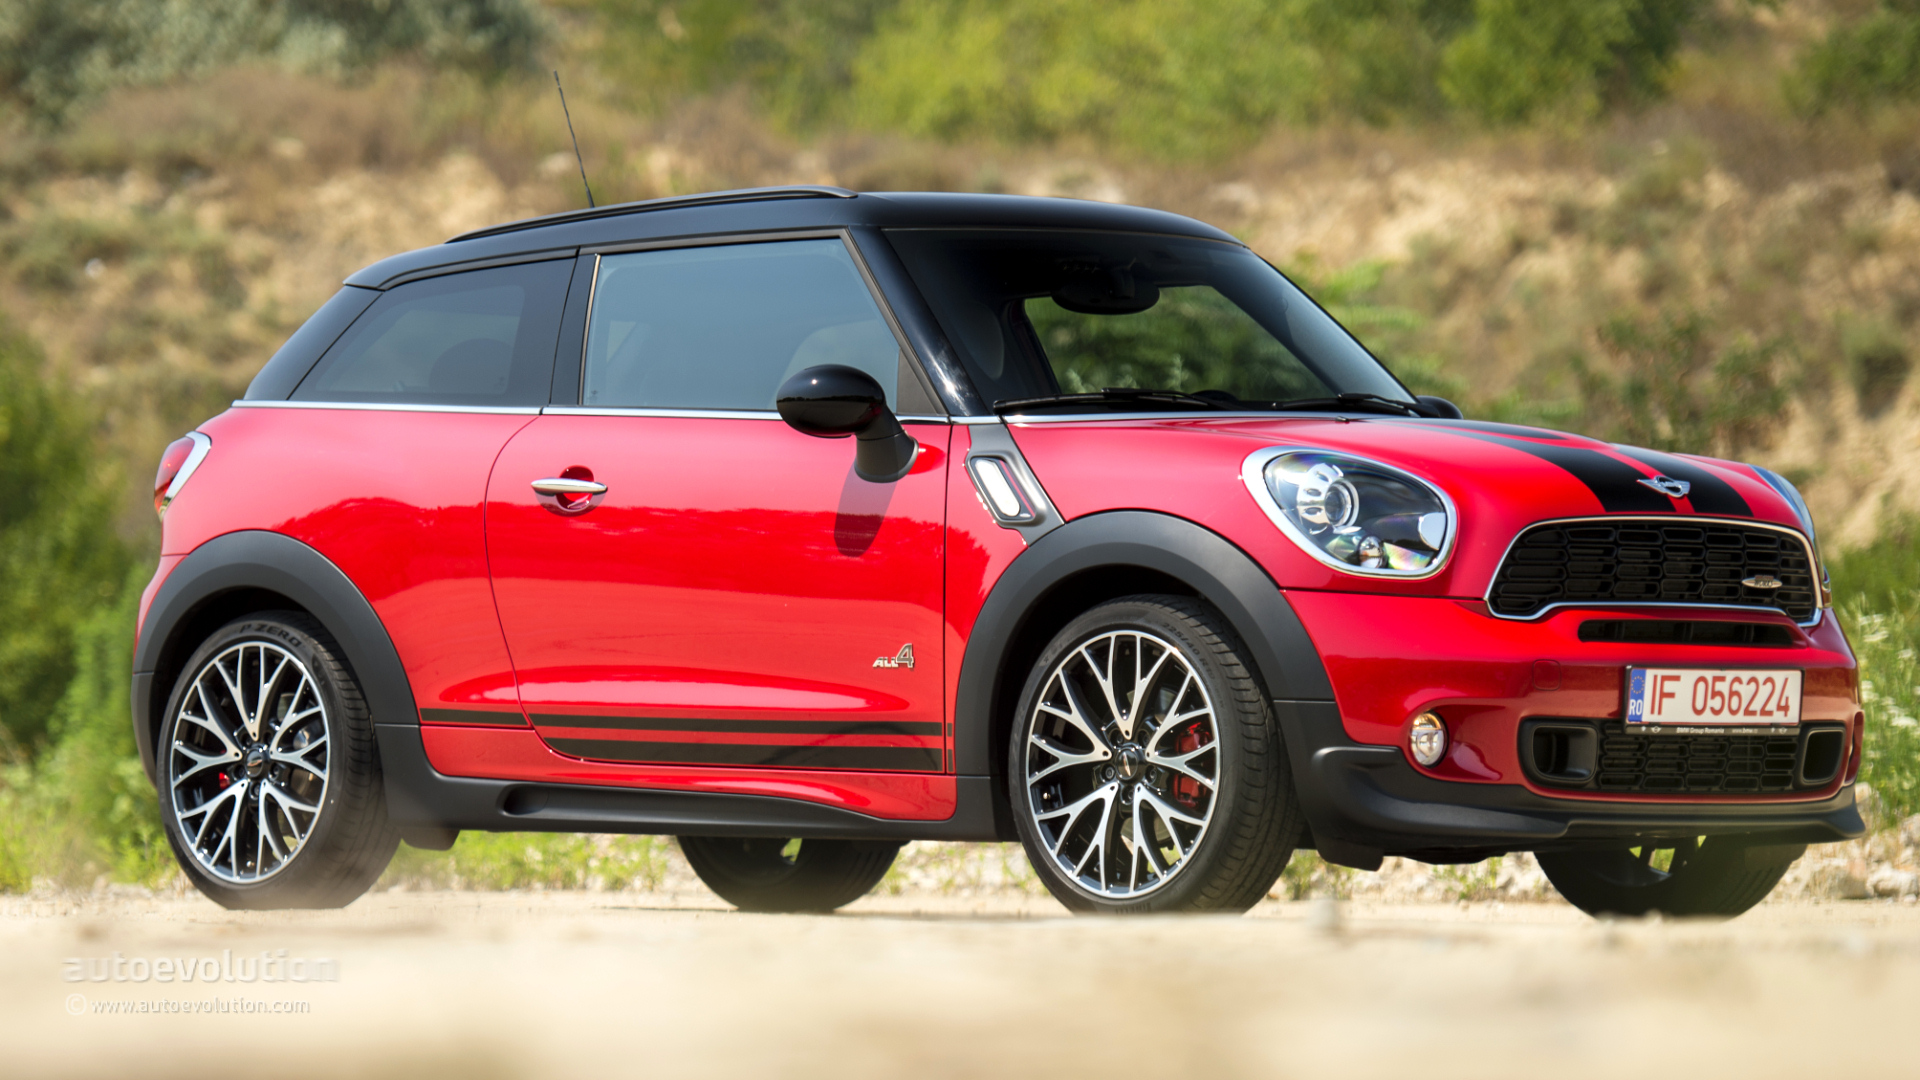 2015 mini john cooper works all4 paceman review. Black Bedroom Furniture Sets. Home Design Ideas